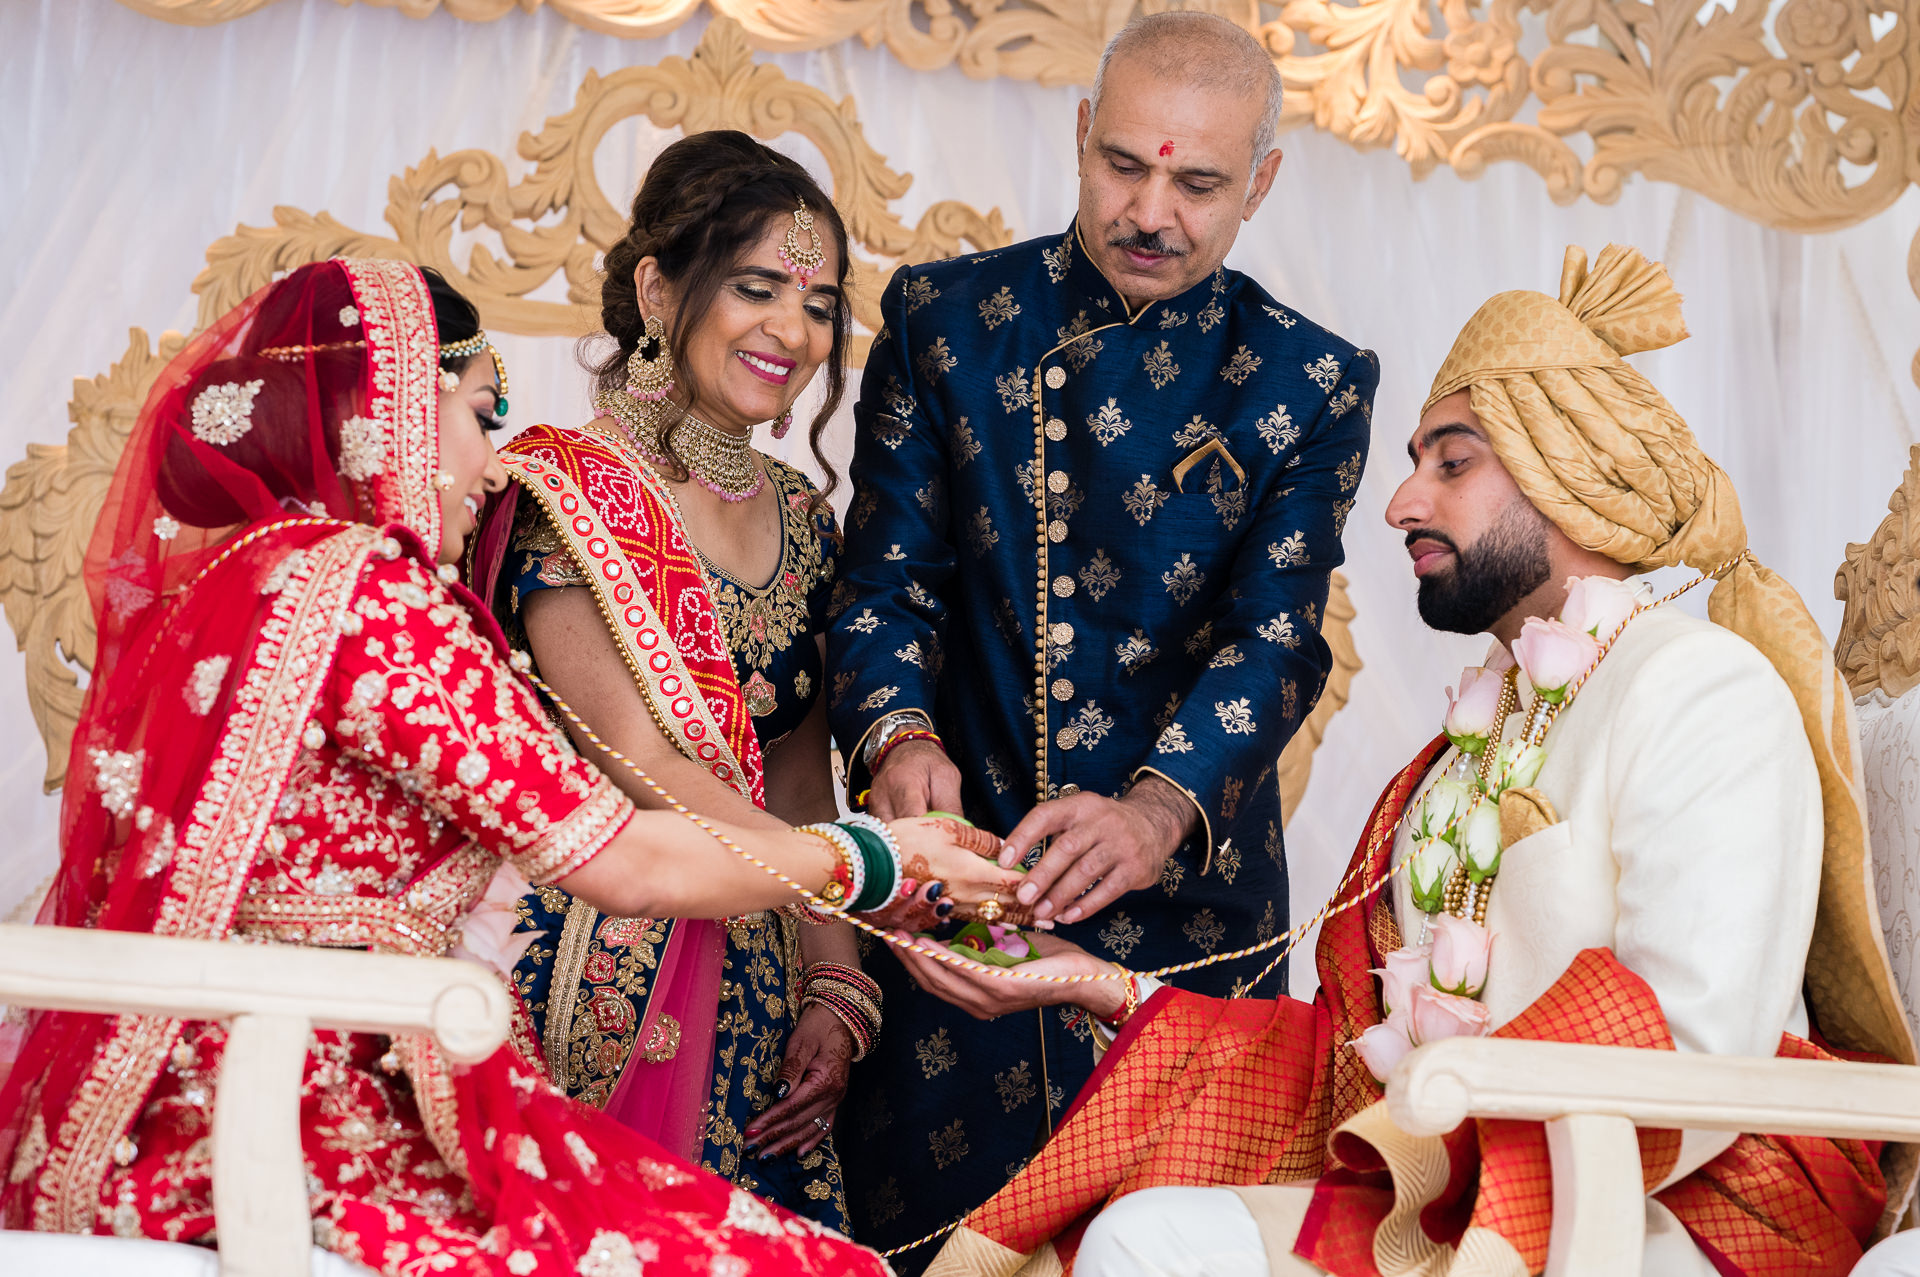 Parents of the bride giving hand away in marriage